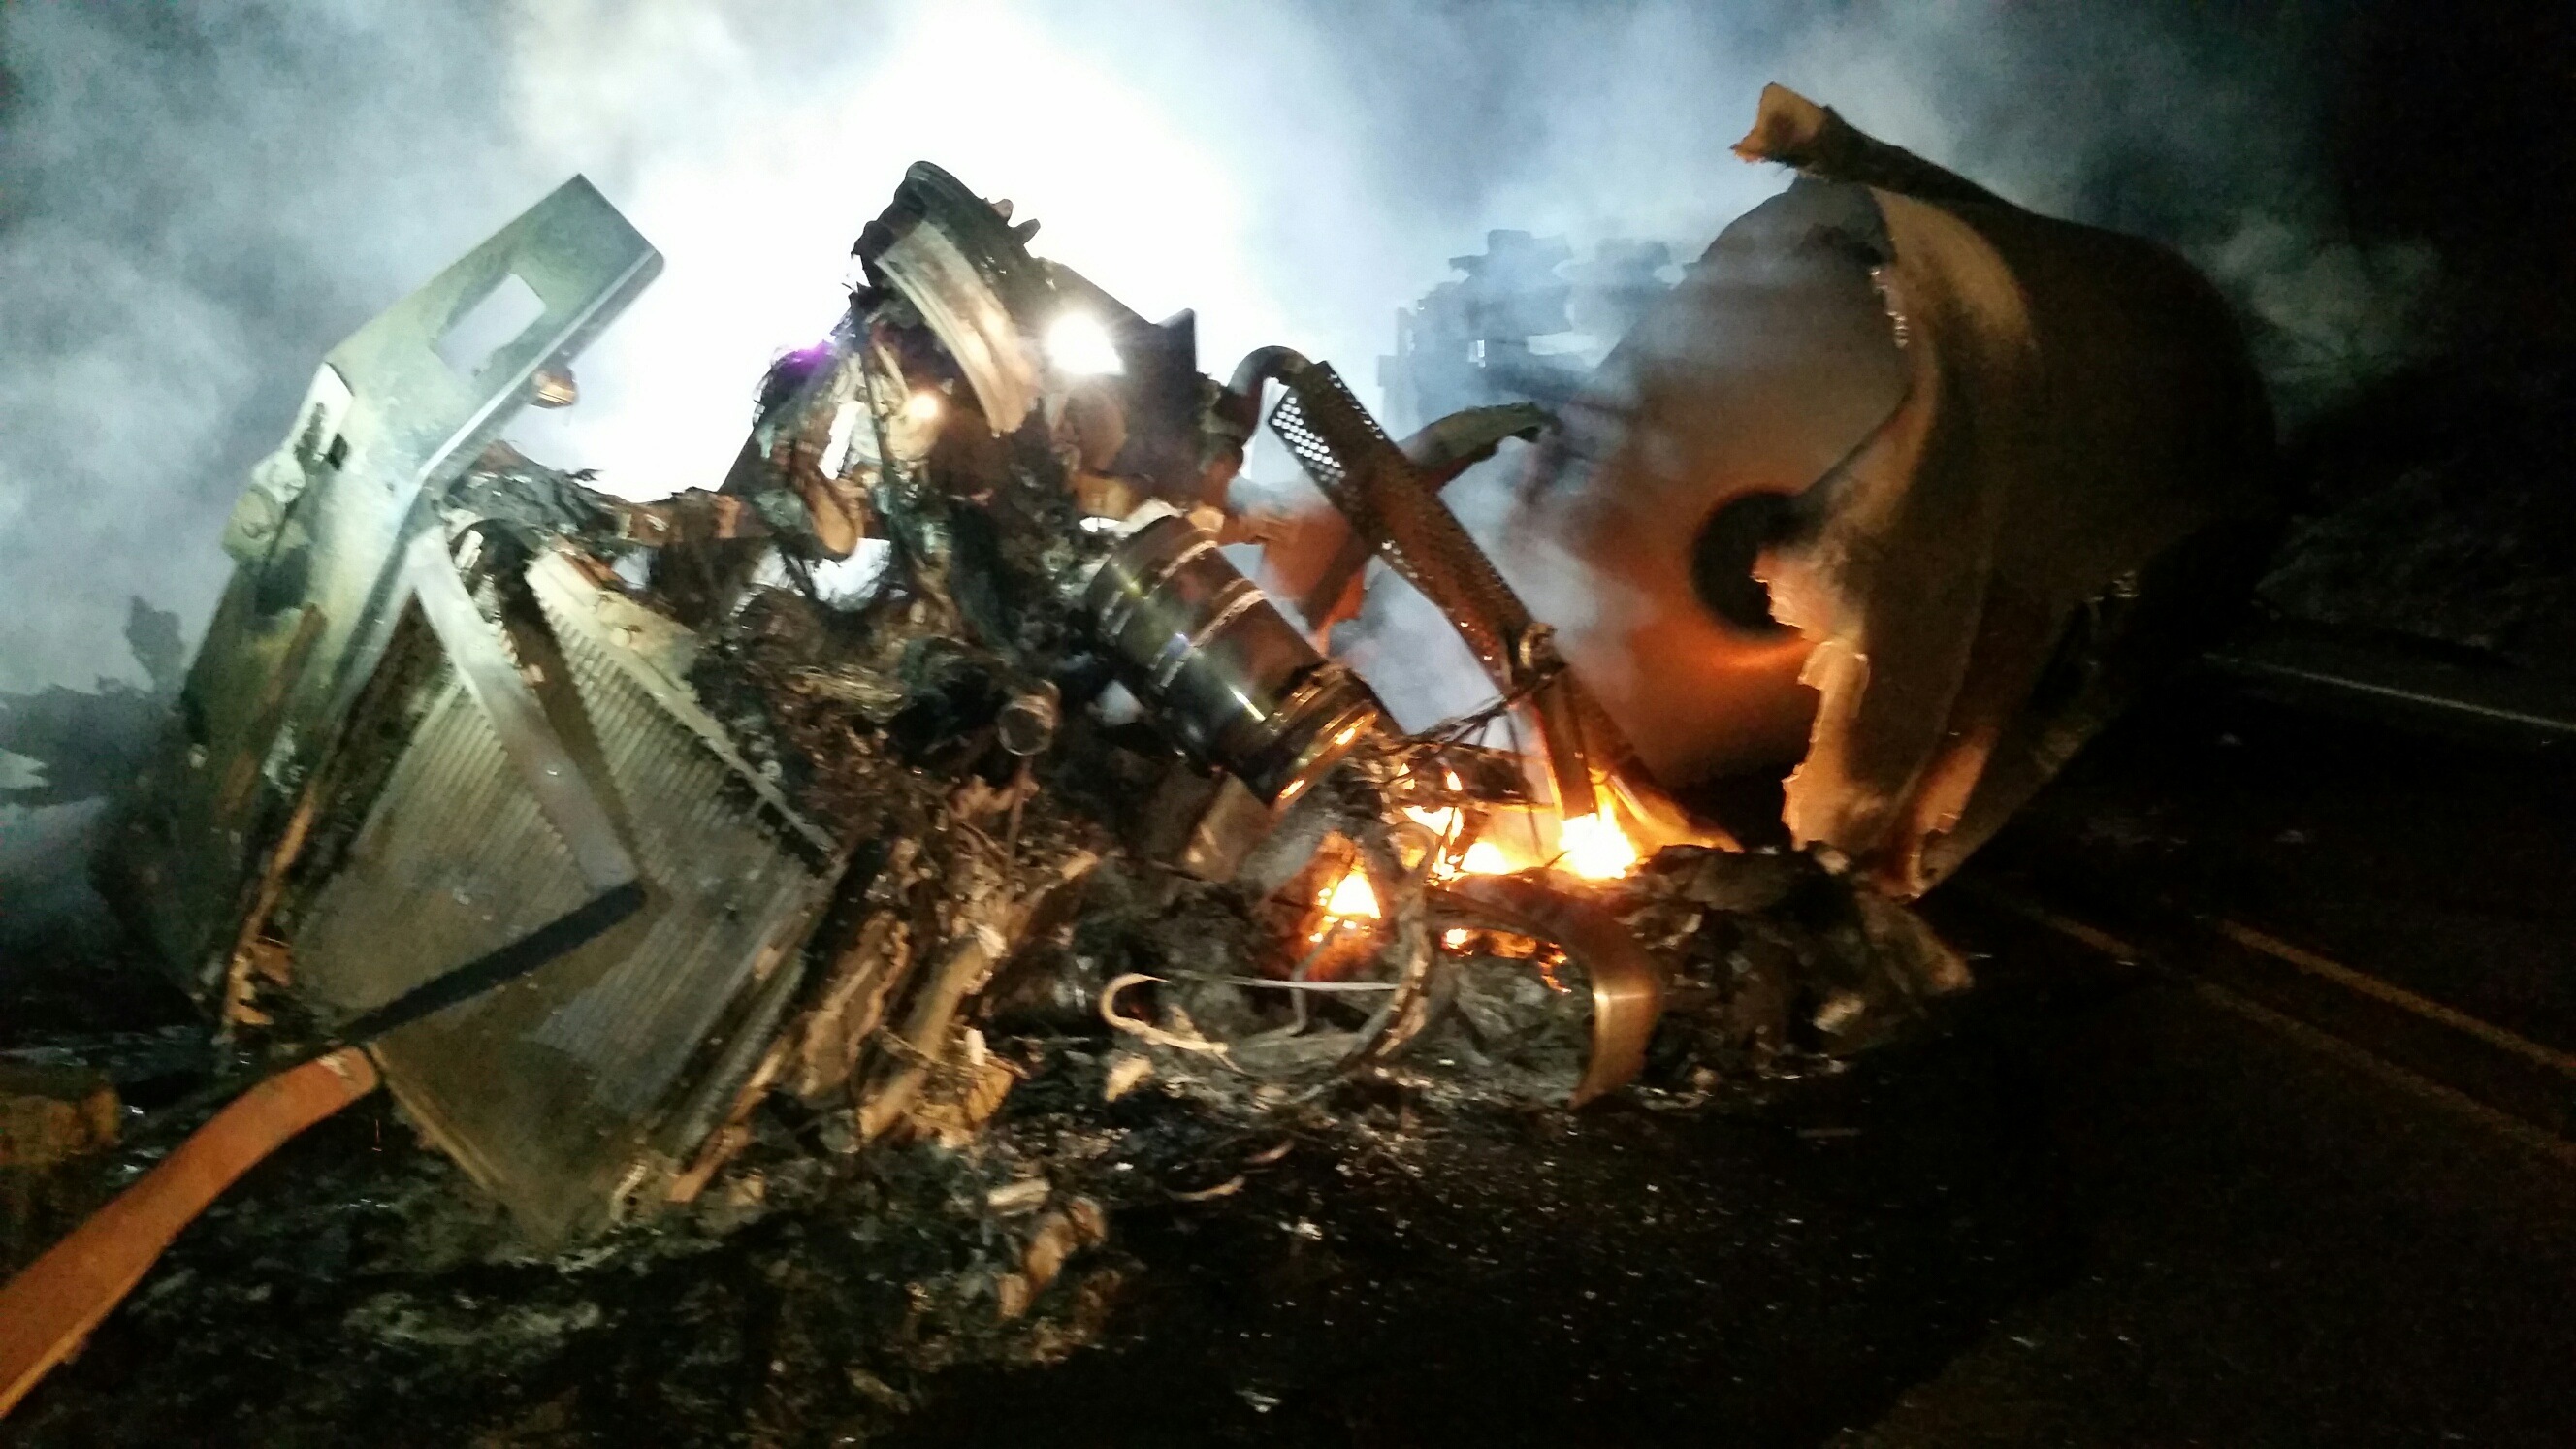 Fuel truck crashes on icy Oregon highway, killing driver and setting brush on fire